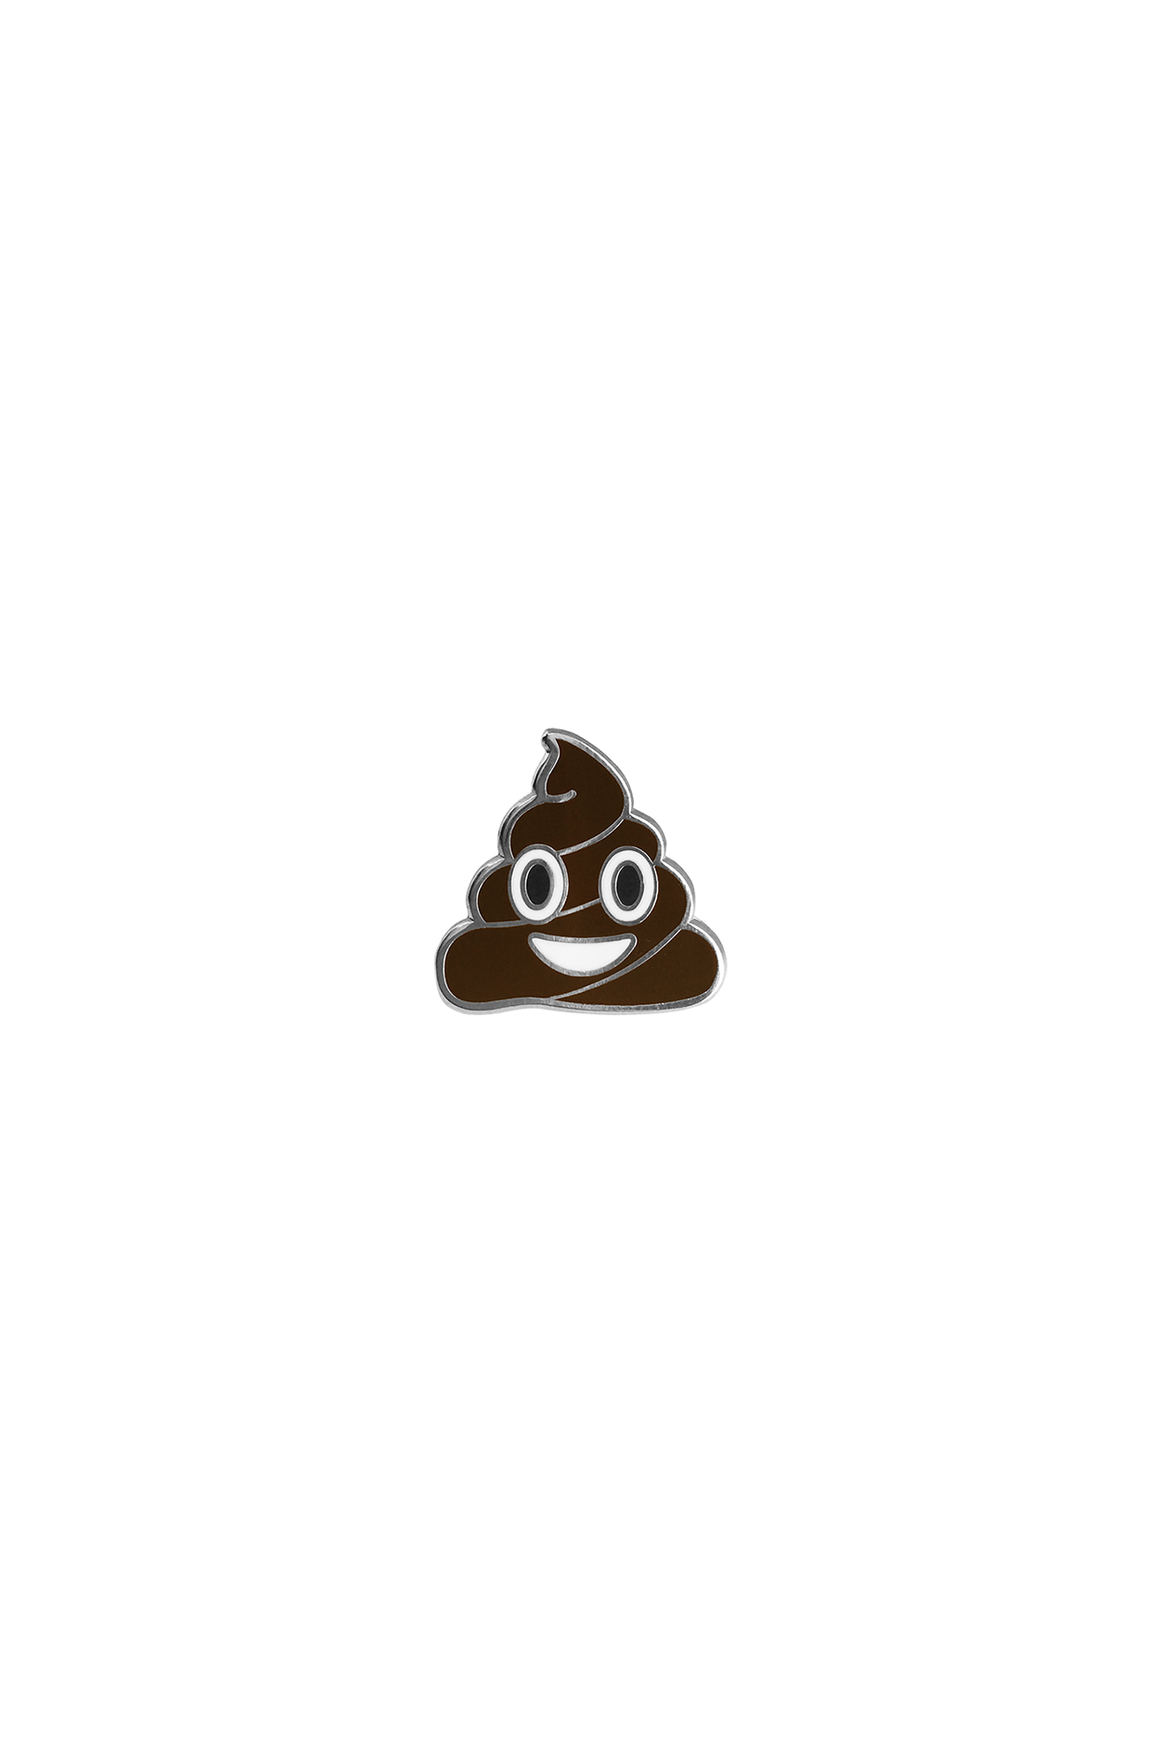 Happy Poop Emoji Lapel Pin - Philistine